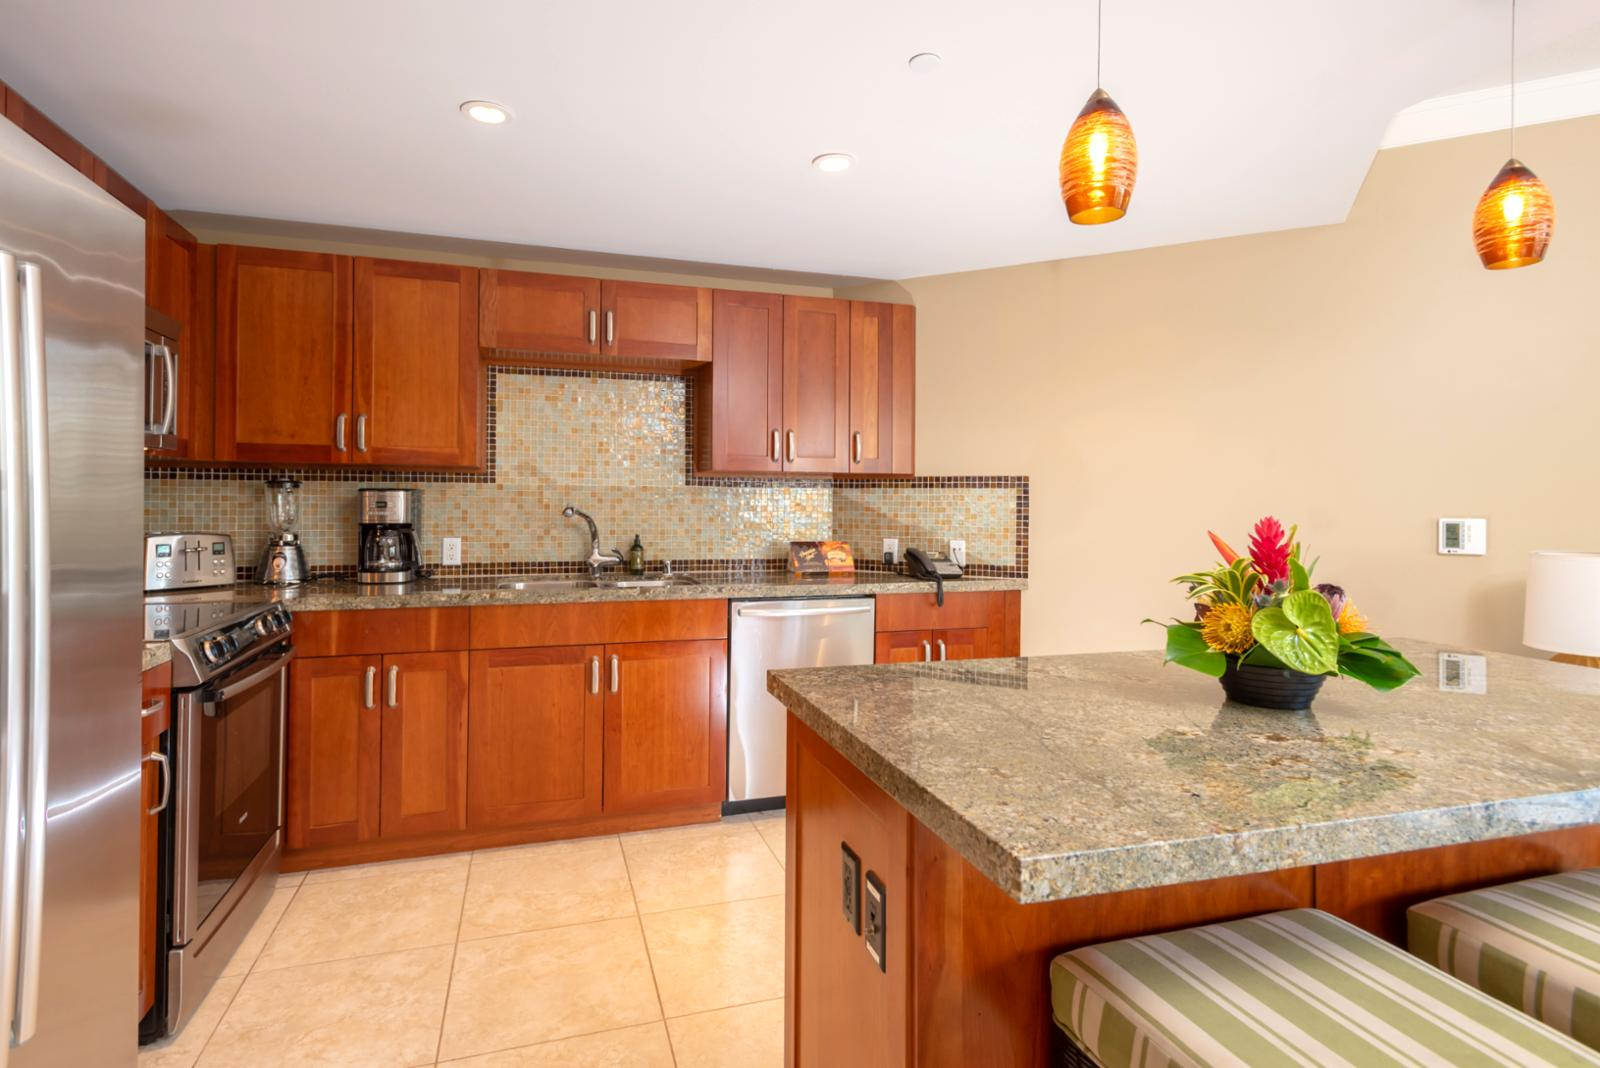 Large layout and counter space